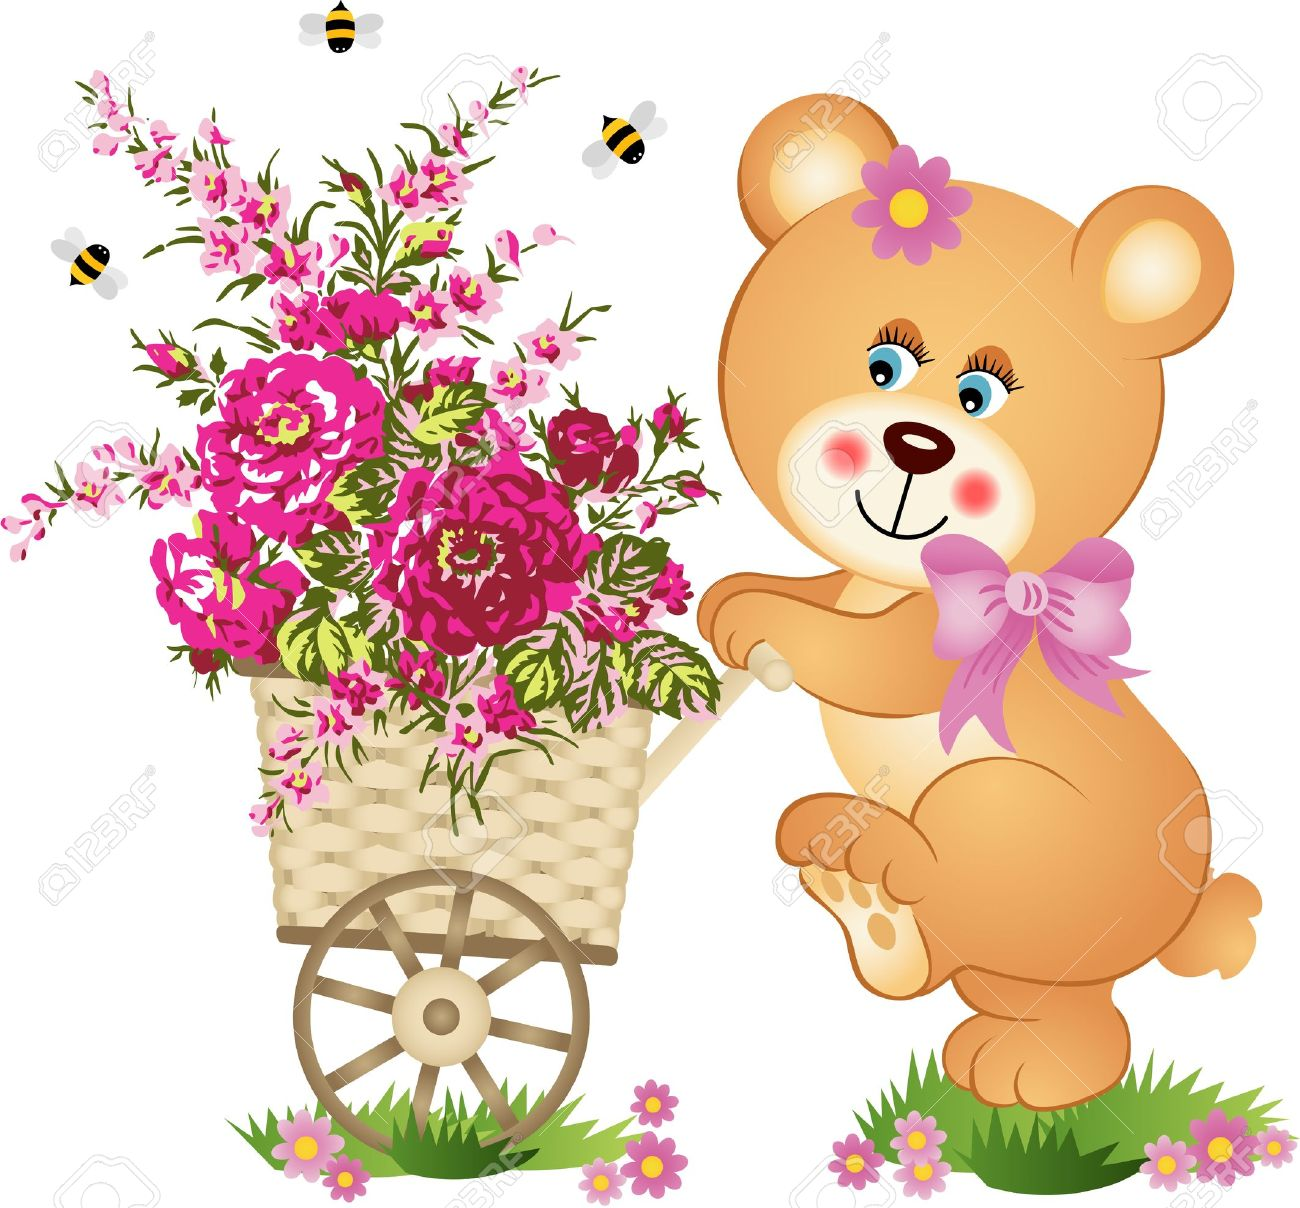 Teddy bear pushing a cart of flowers.